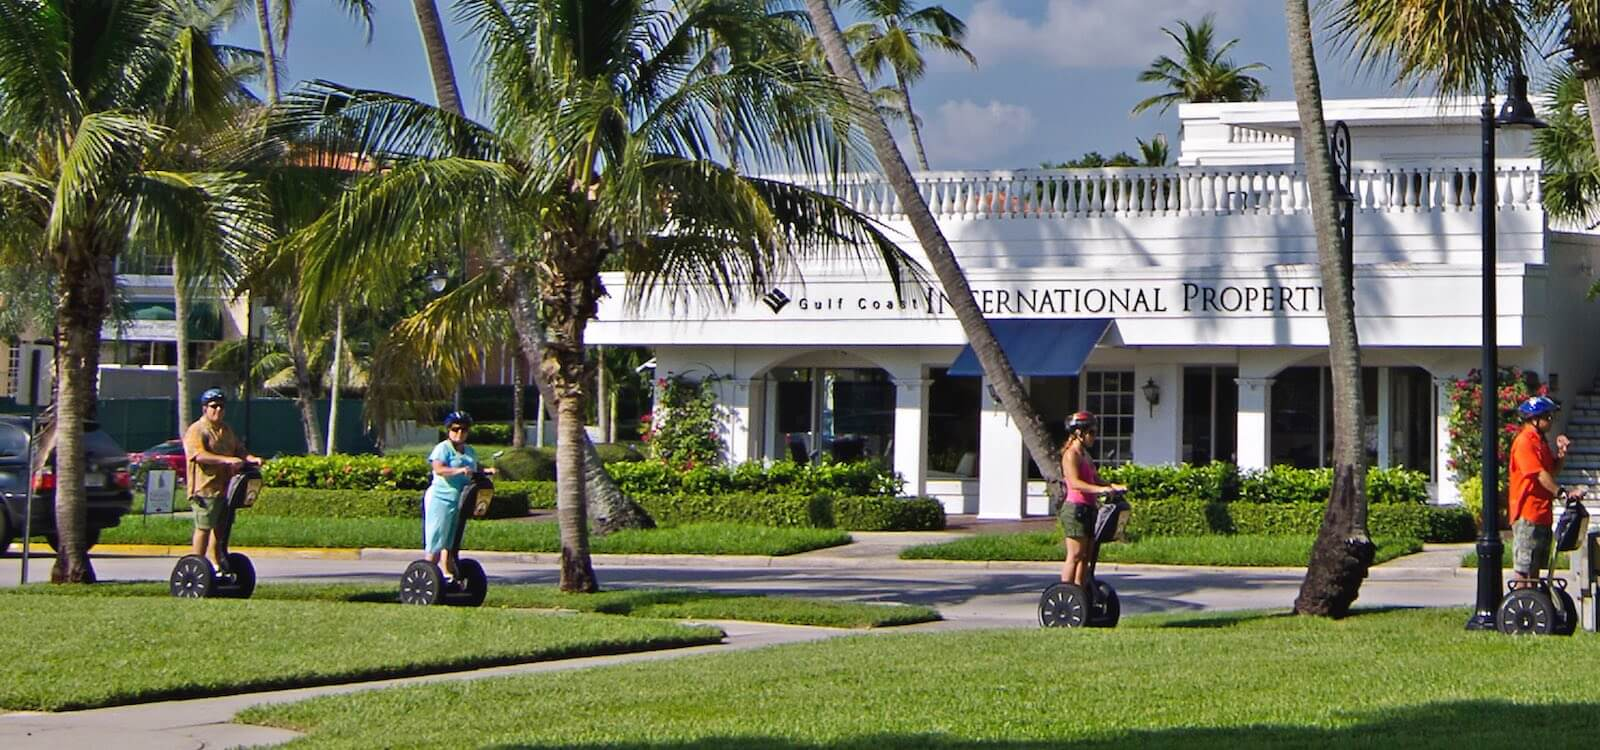 MustDo.com | Must Do Visitor Guides Naples, Florida Segway sightseeing tour. Photo by Jennifer Brinkman.